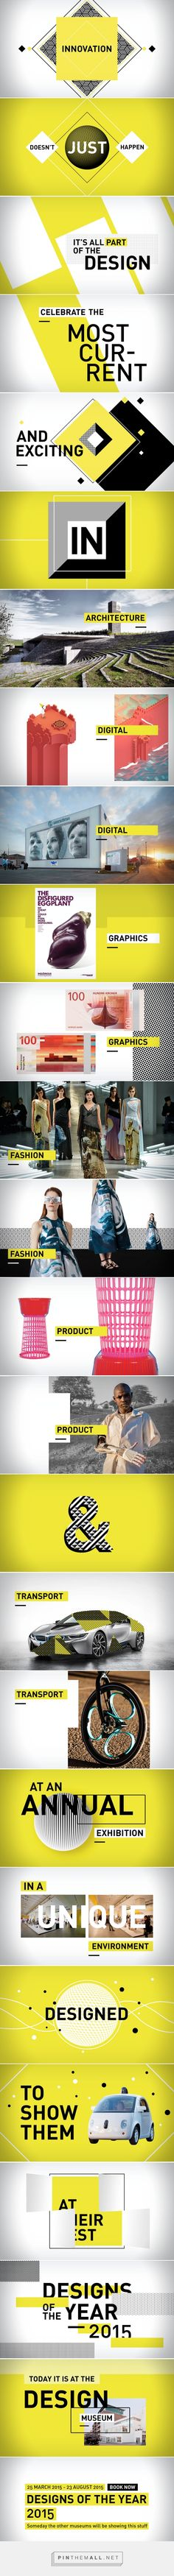 Style frames - motion graphic design  http://pinthemall.net/pin/55c0f39411760/?creation=1